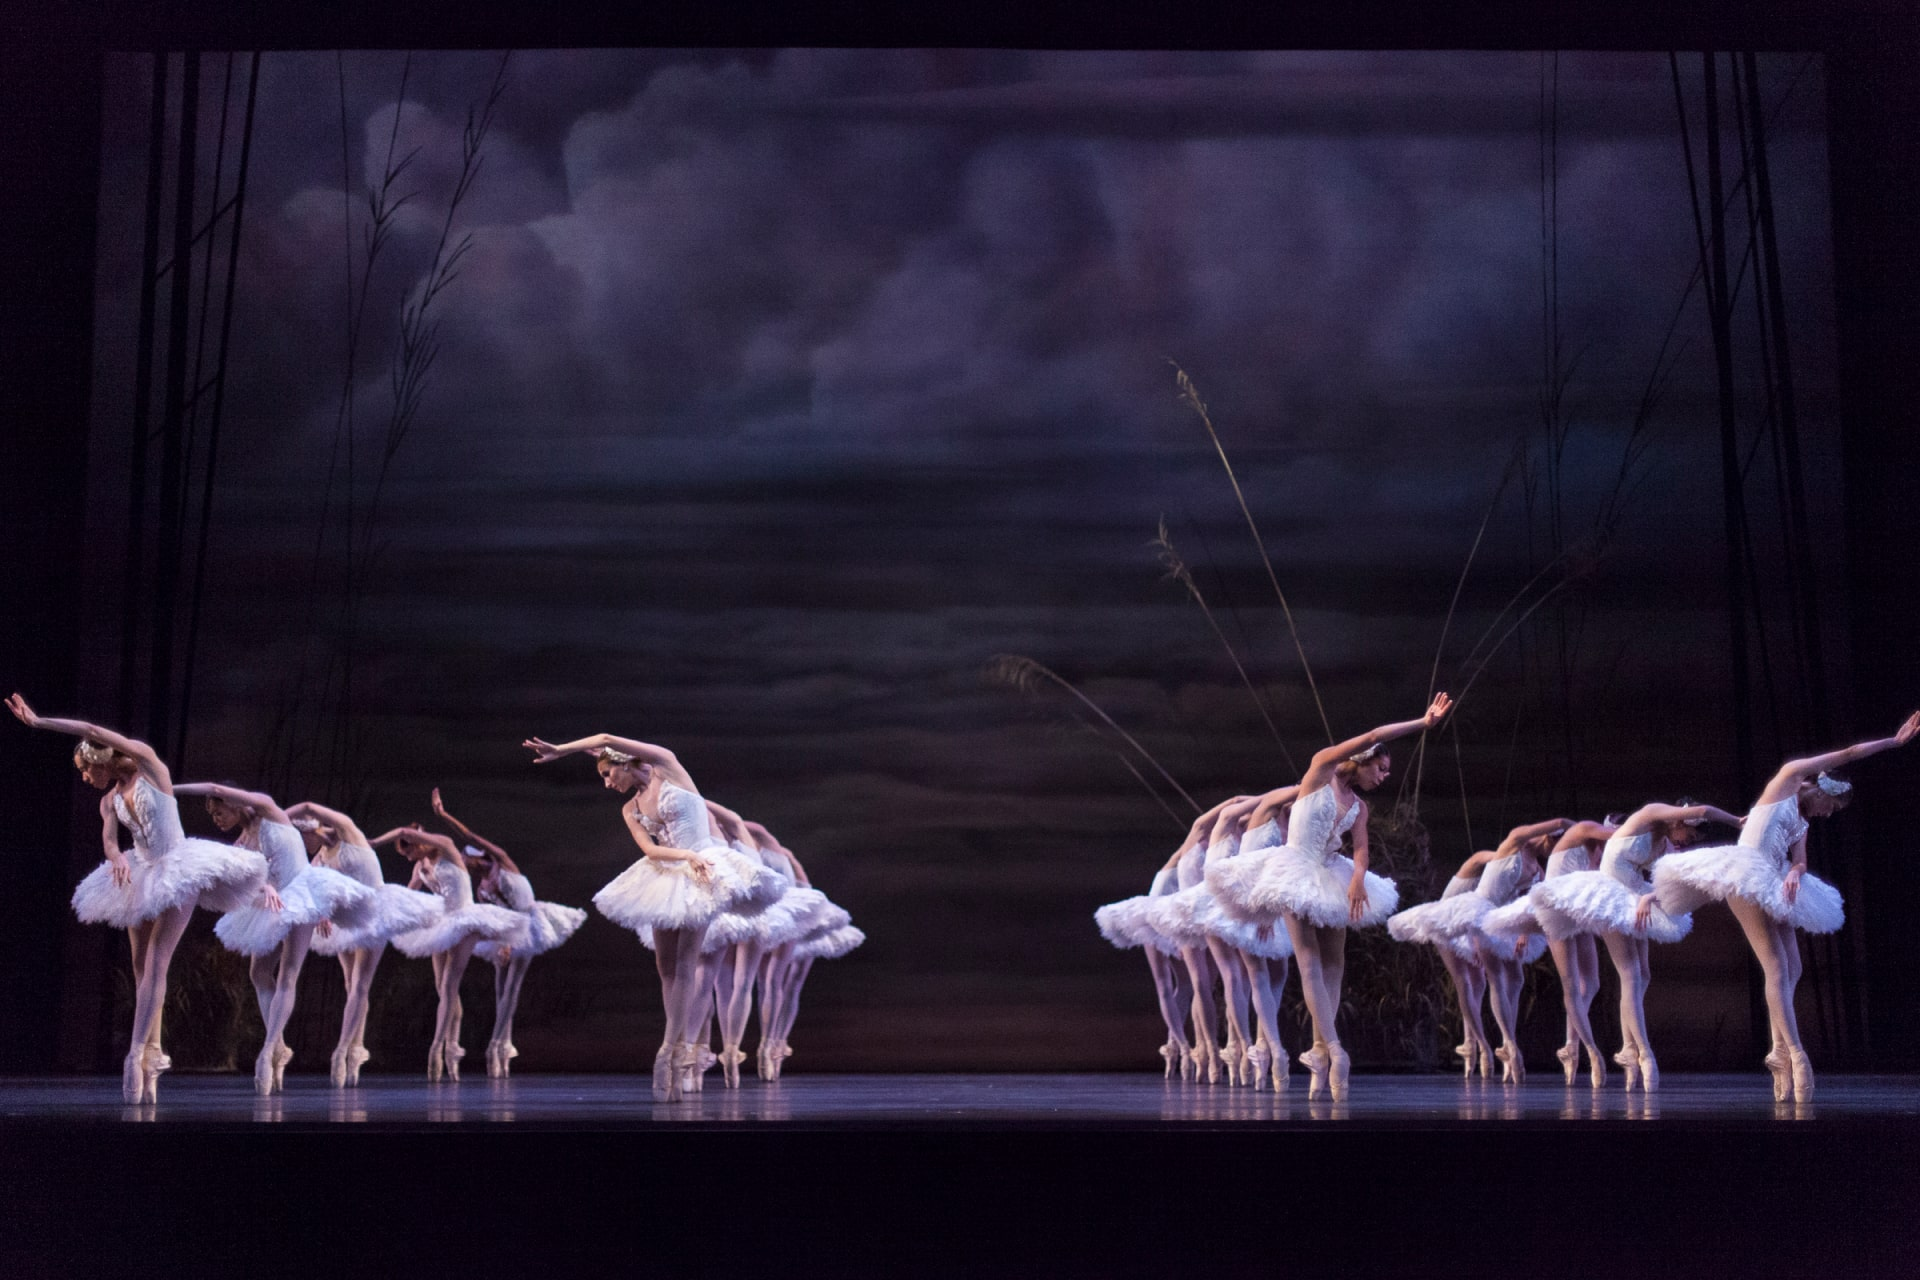 Four rows of ballerinas in white tutus, on point, against background of stormy rolling clouds.